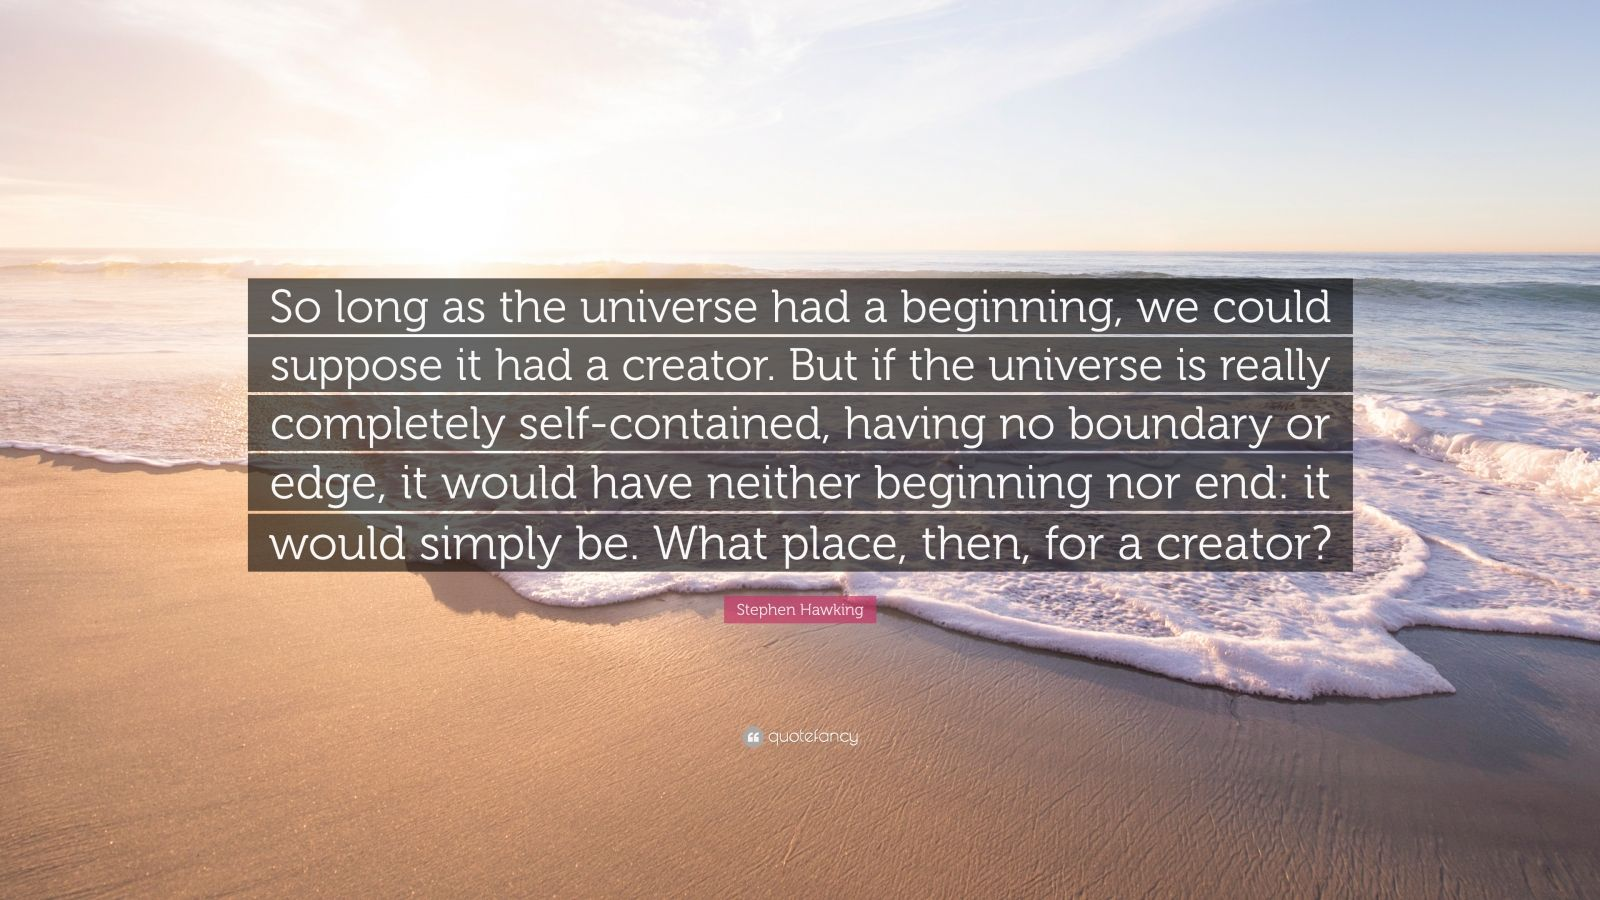 "Stephen Hawking Quote: ""So long as the universe had a beginning, we could suppose it had a creator. But if the universe is really completely self-contained, having no boundary or edge, it would have neither beginning nor end: it would simply be. What place, then, for a creator?"""